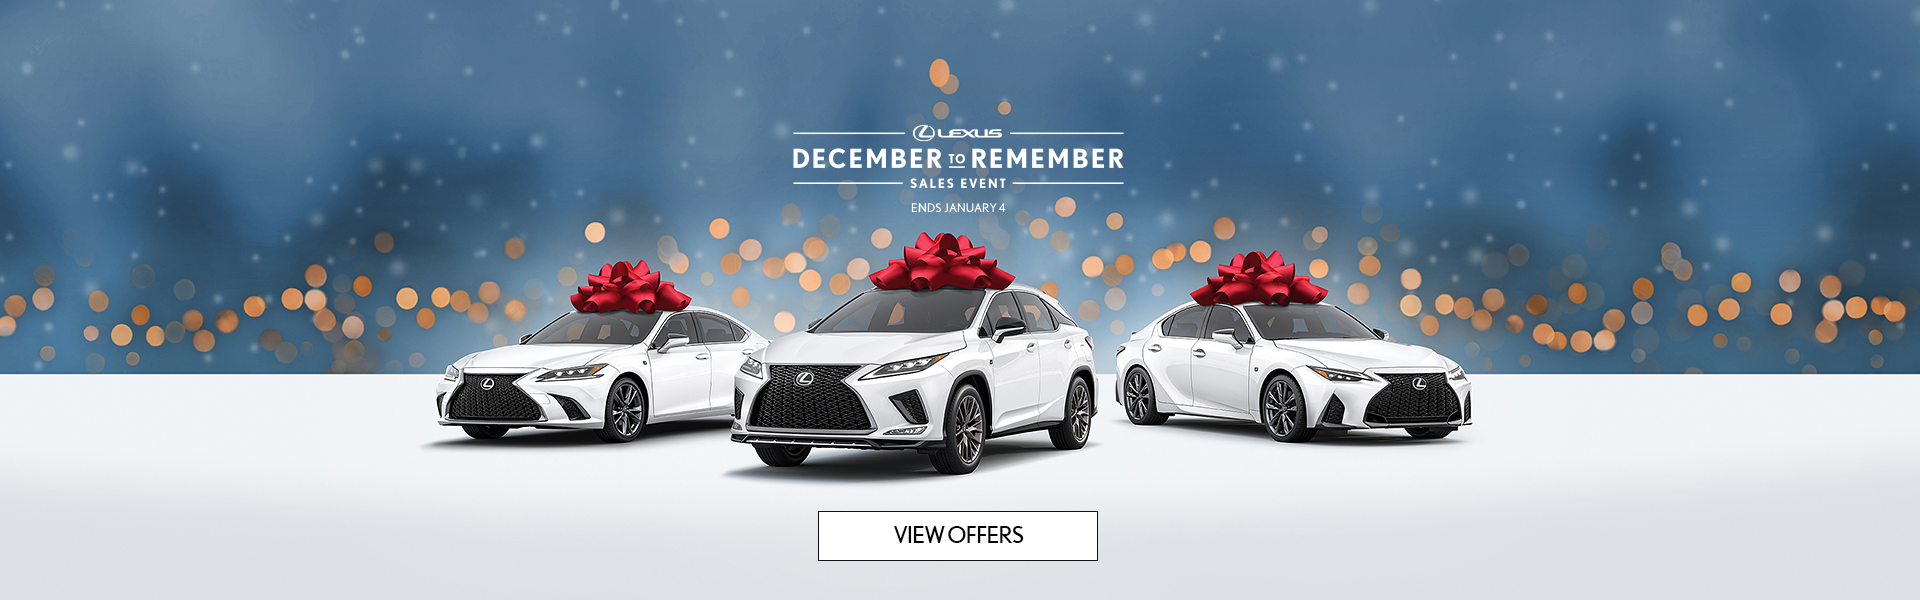 December to Remember – Homepage Slider – Jan 4